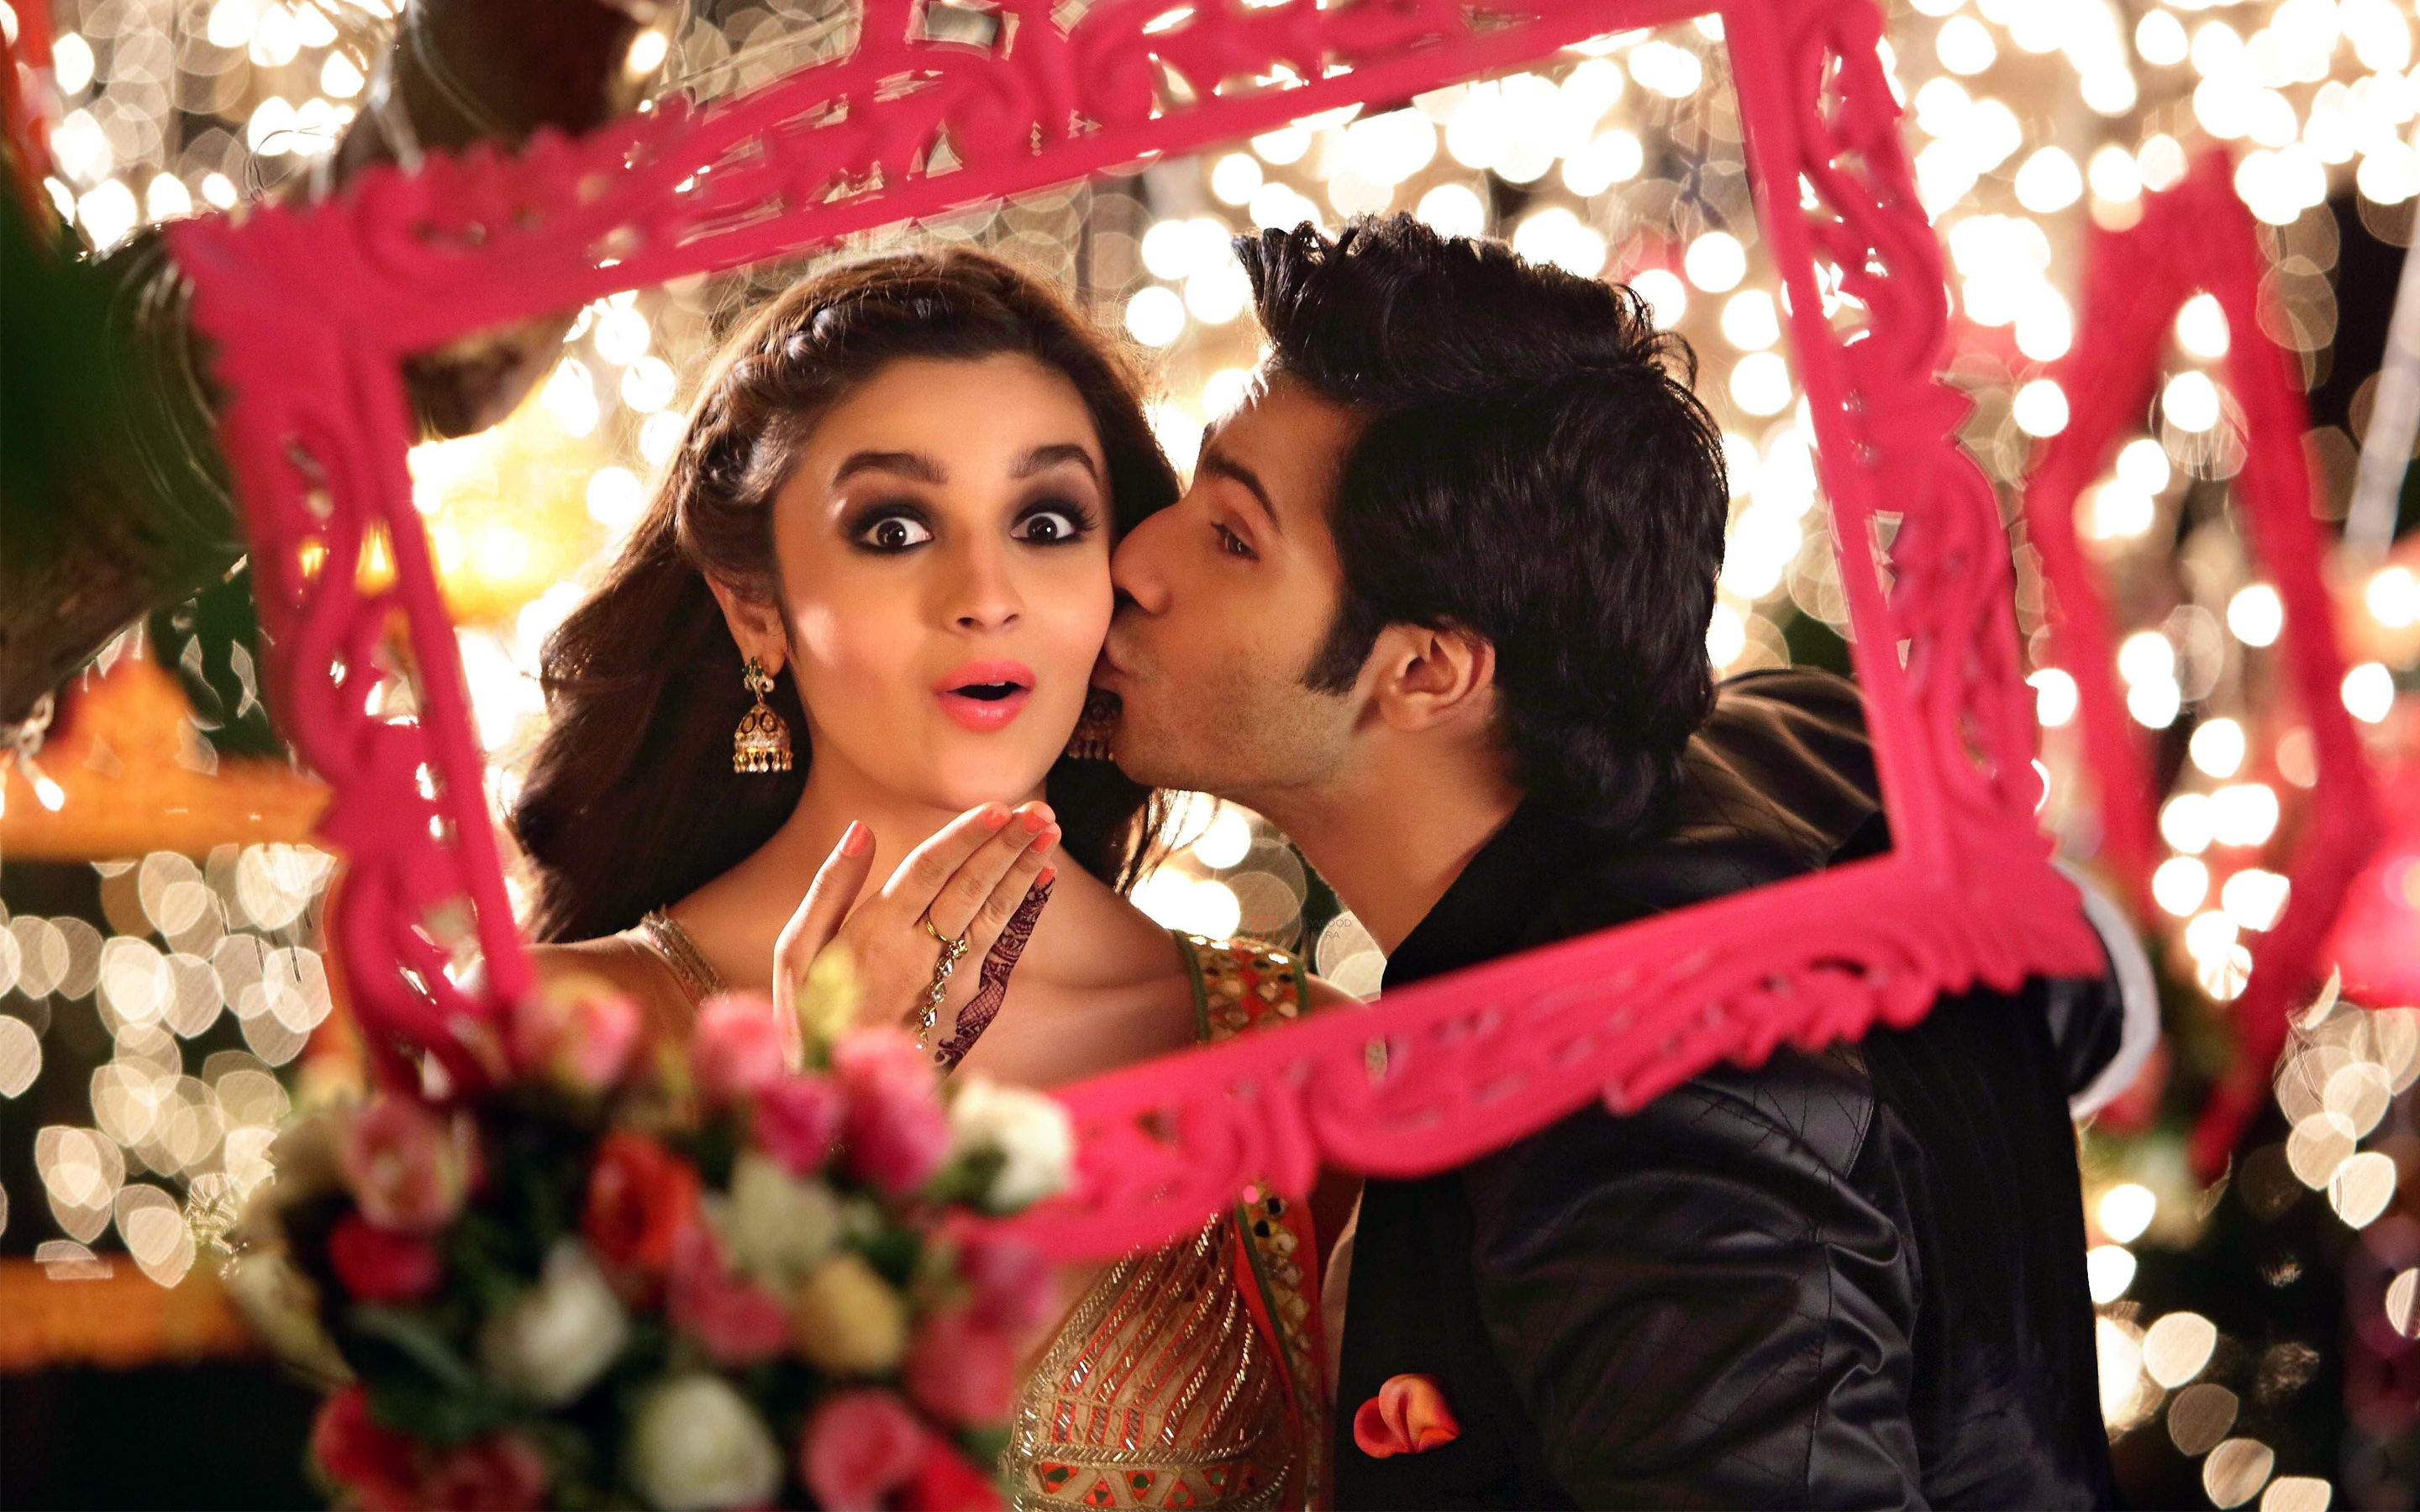 The title of Varun Dhawan and Alia Bhatt's next is out and it includes 'DULHANIA'